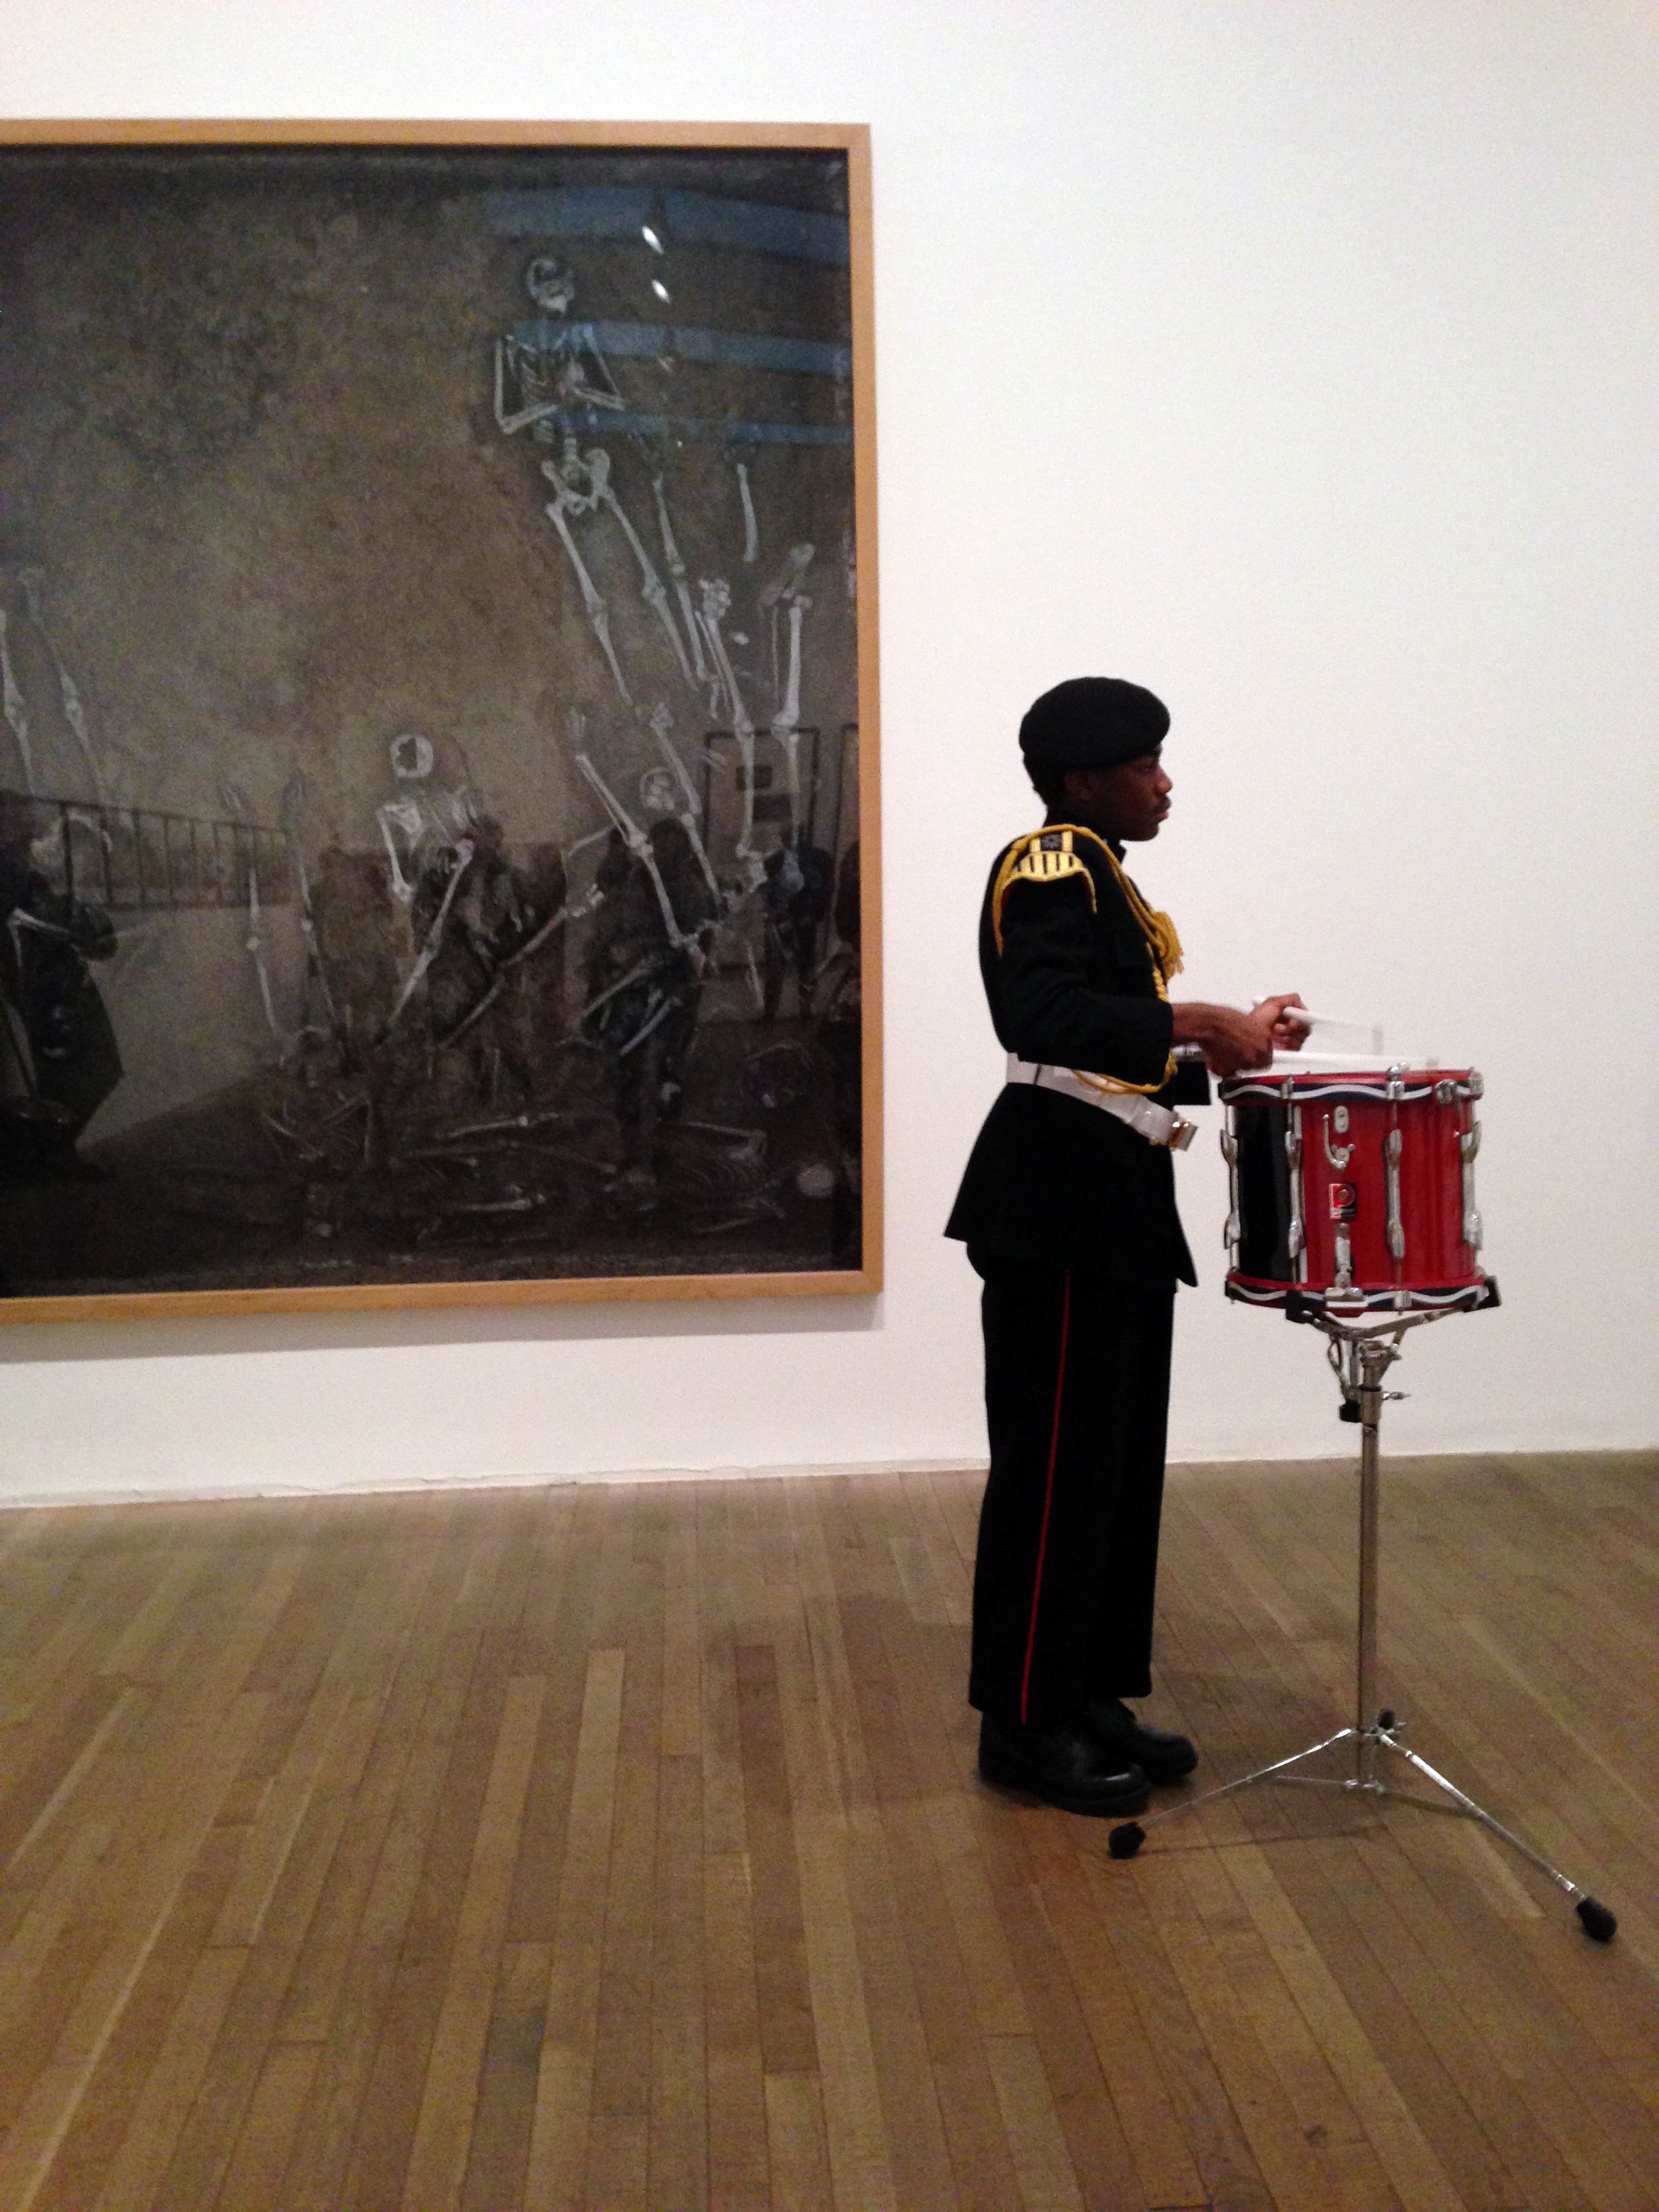 Adam Broomberg and Adam Broomberg and Oliver Chanarin, War Primer II: One Way Song at Tate Modern, 26 January 2015, photograph by Jessie Bond